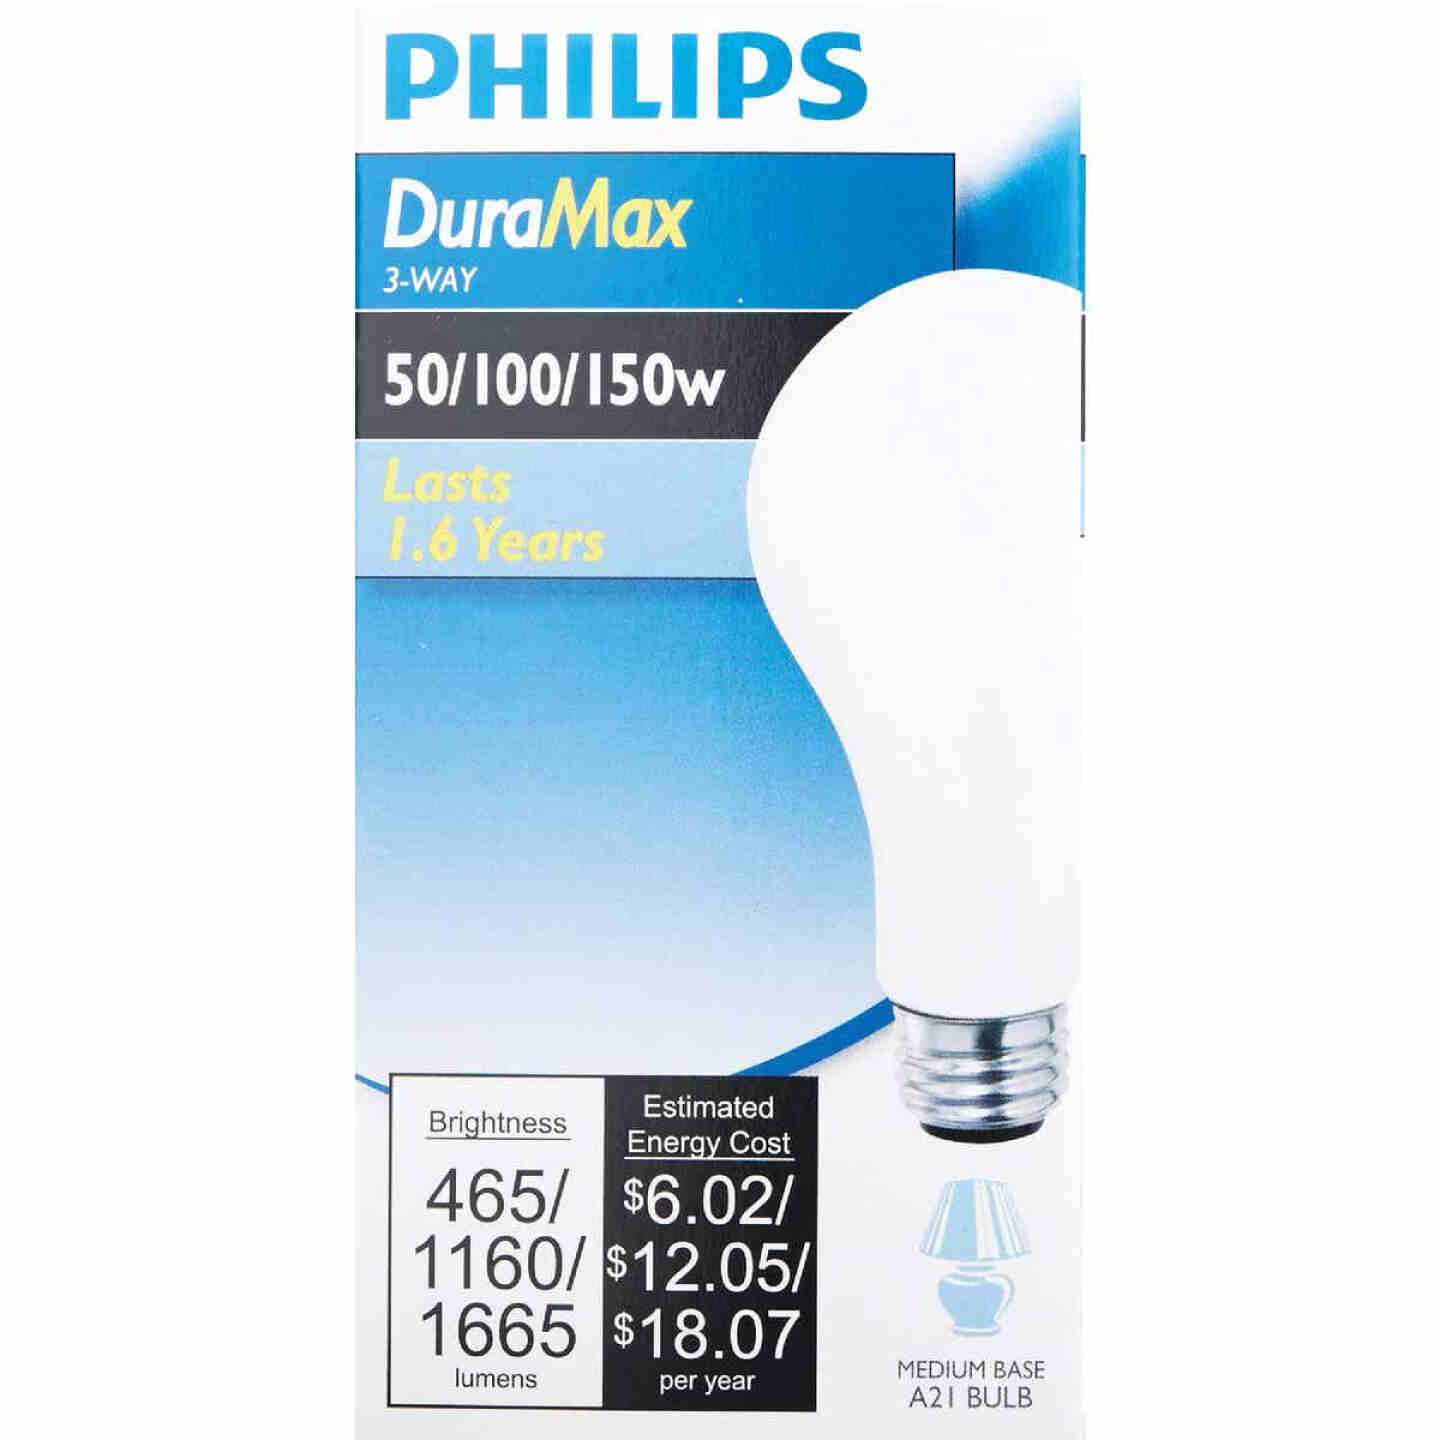 Philips Duramax 50/100/150W Frosted Soft White Medium Base A21 Incandescent 3-Way Light Bulb Image 2